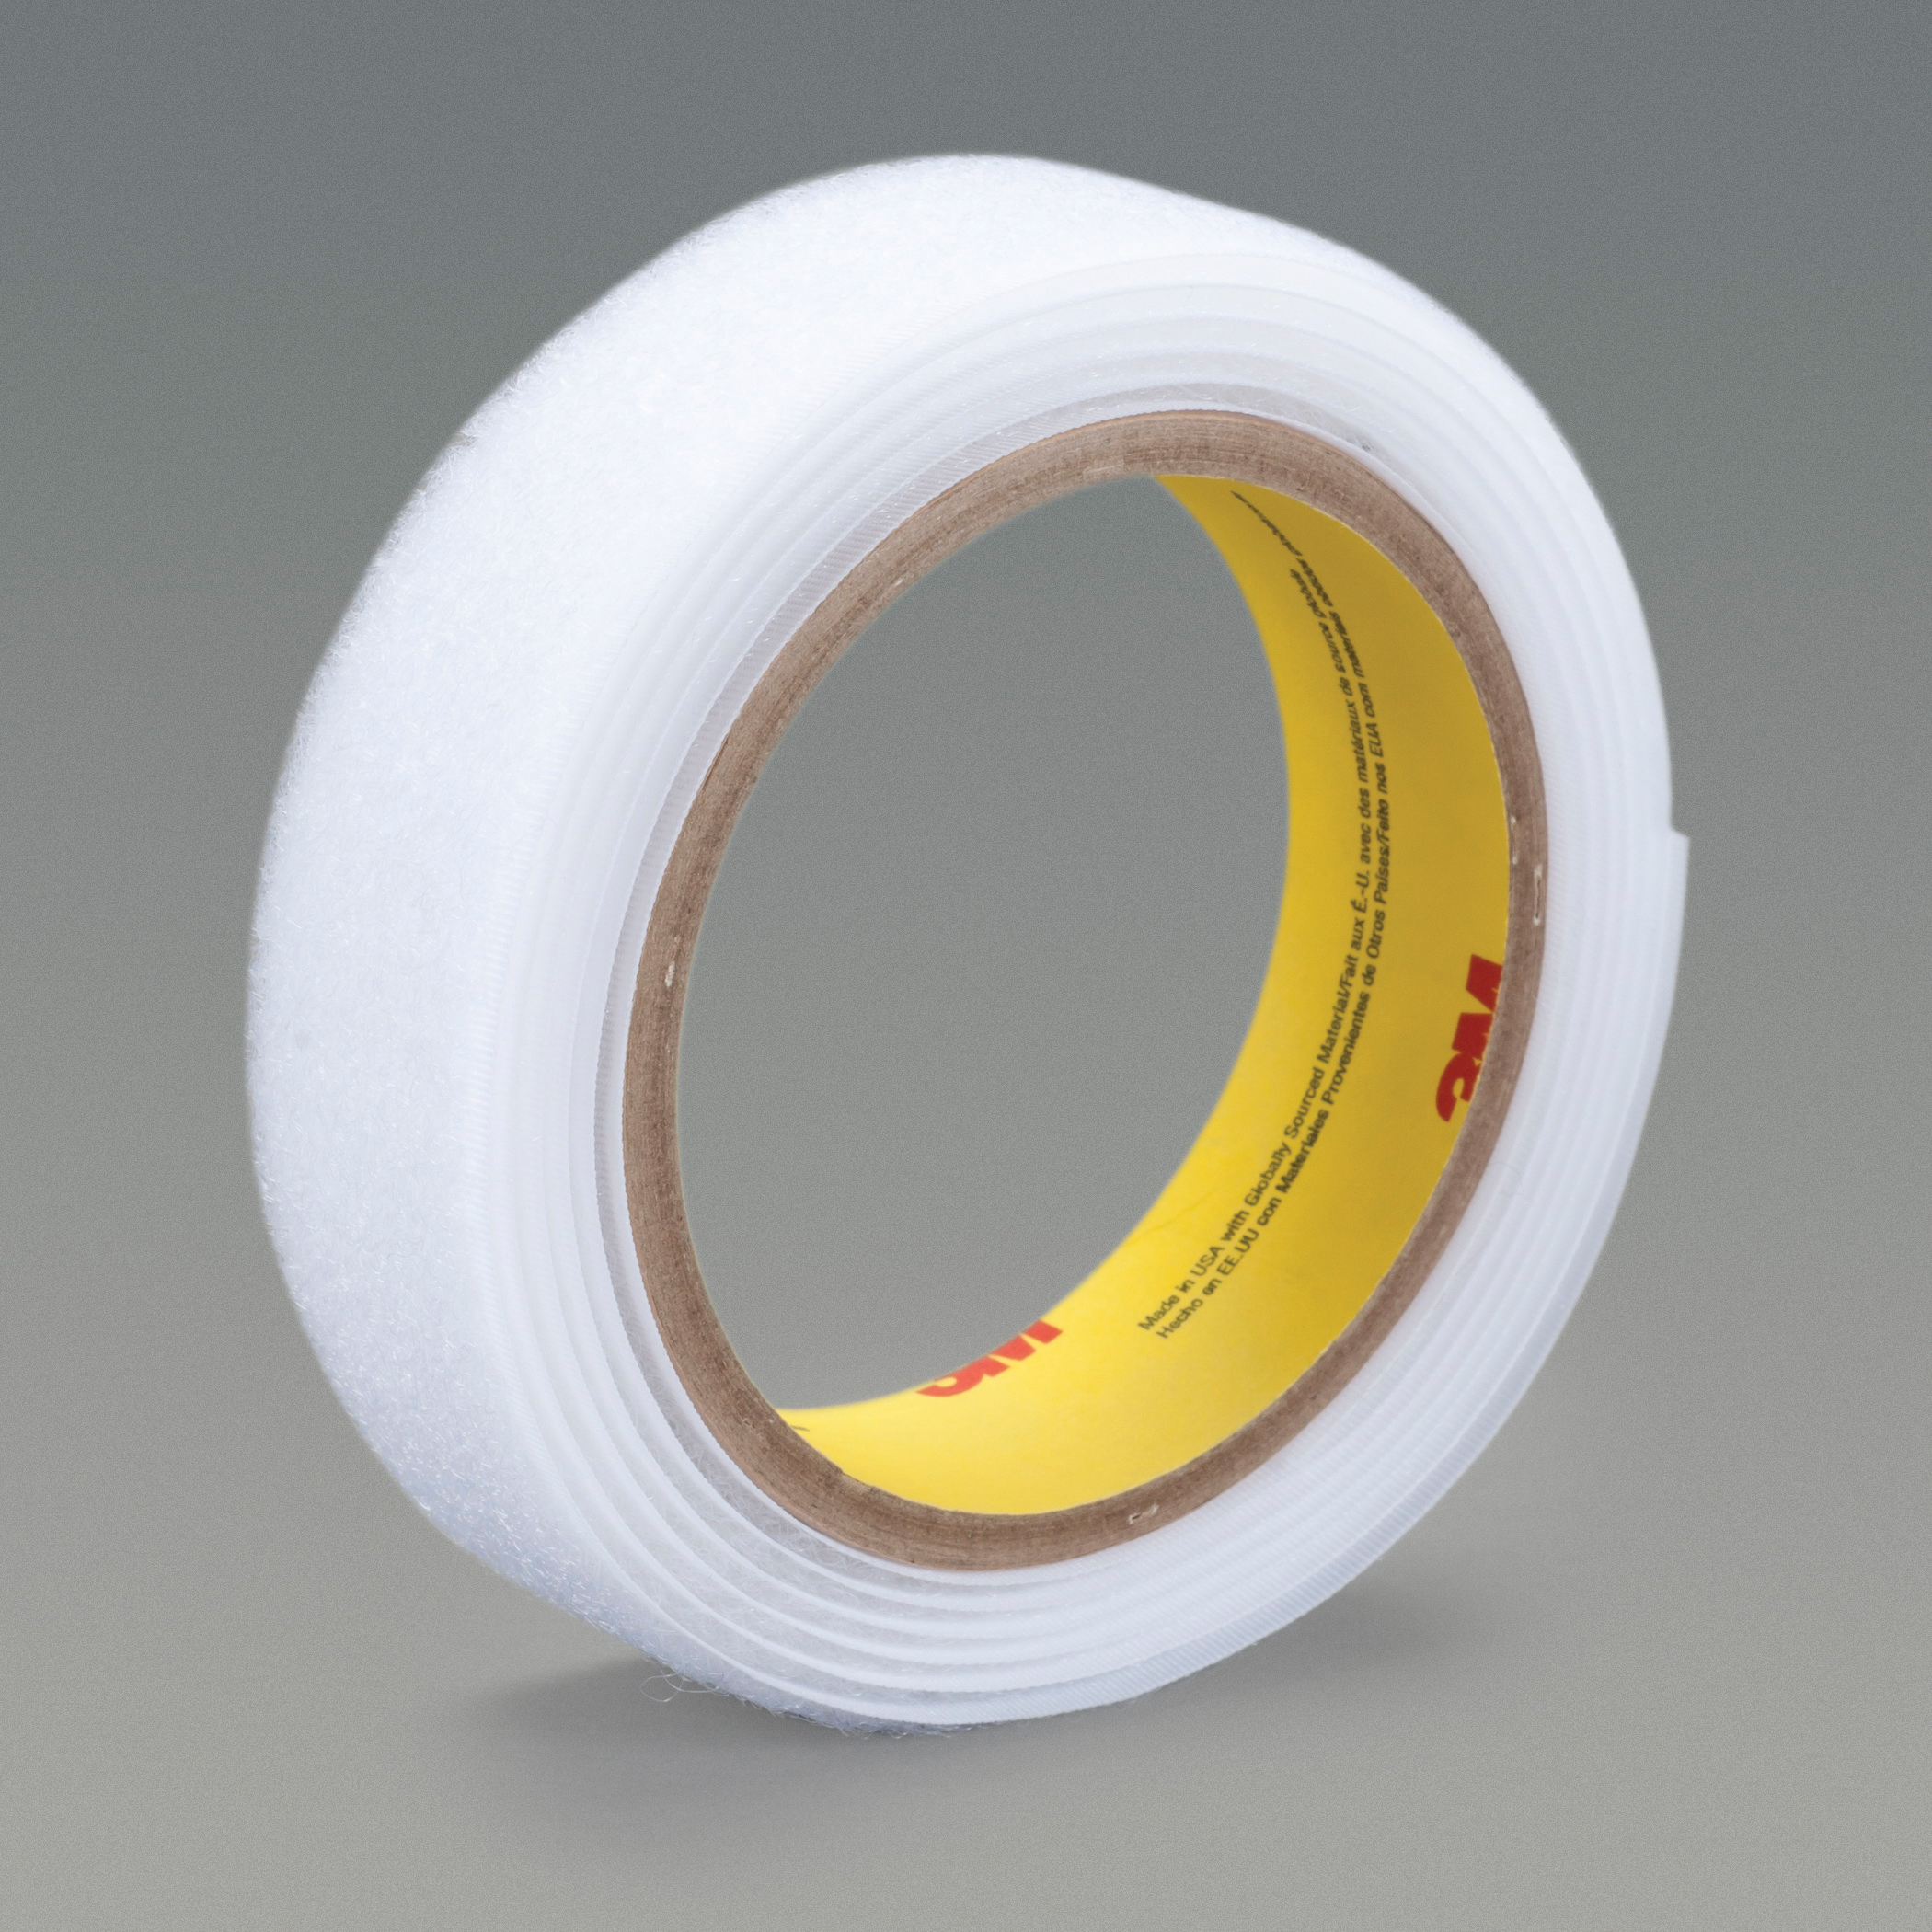 3M™ 021200-38379 Reclosable Loop Fastener Tape, 50 yd L x 1 in W, 0.15 in THK Engaged, Polyethylene Film Liner Adhesive, Woven Nylon Backing, White